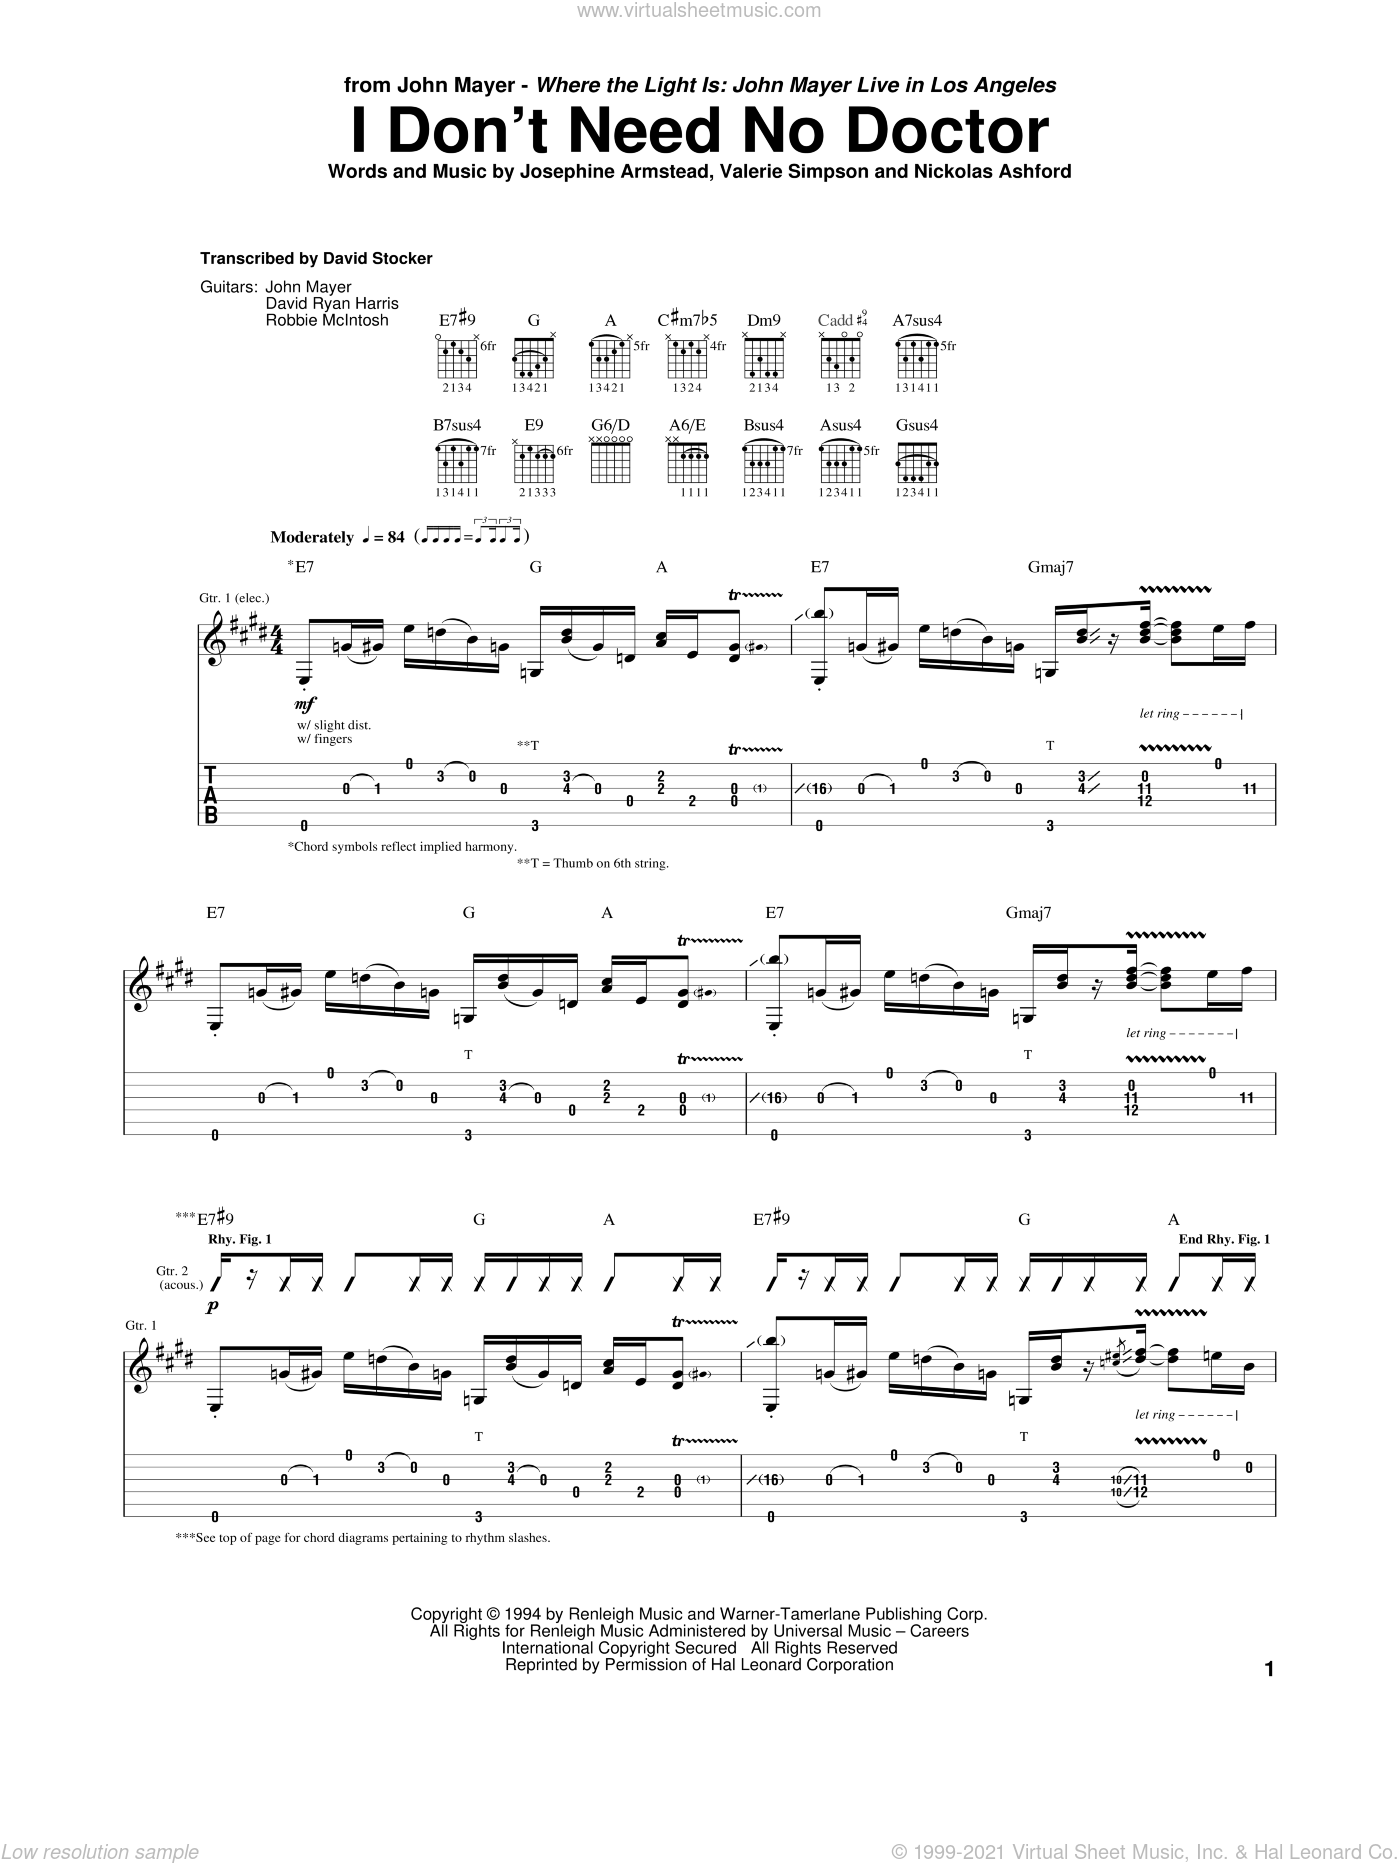 I Don't Need No Doctor sheet music for guitar (tablature) by Valerie Simpson